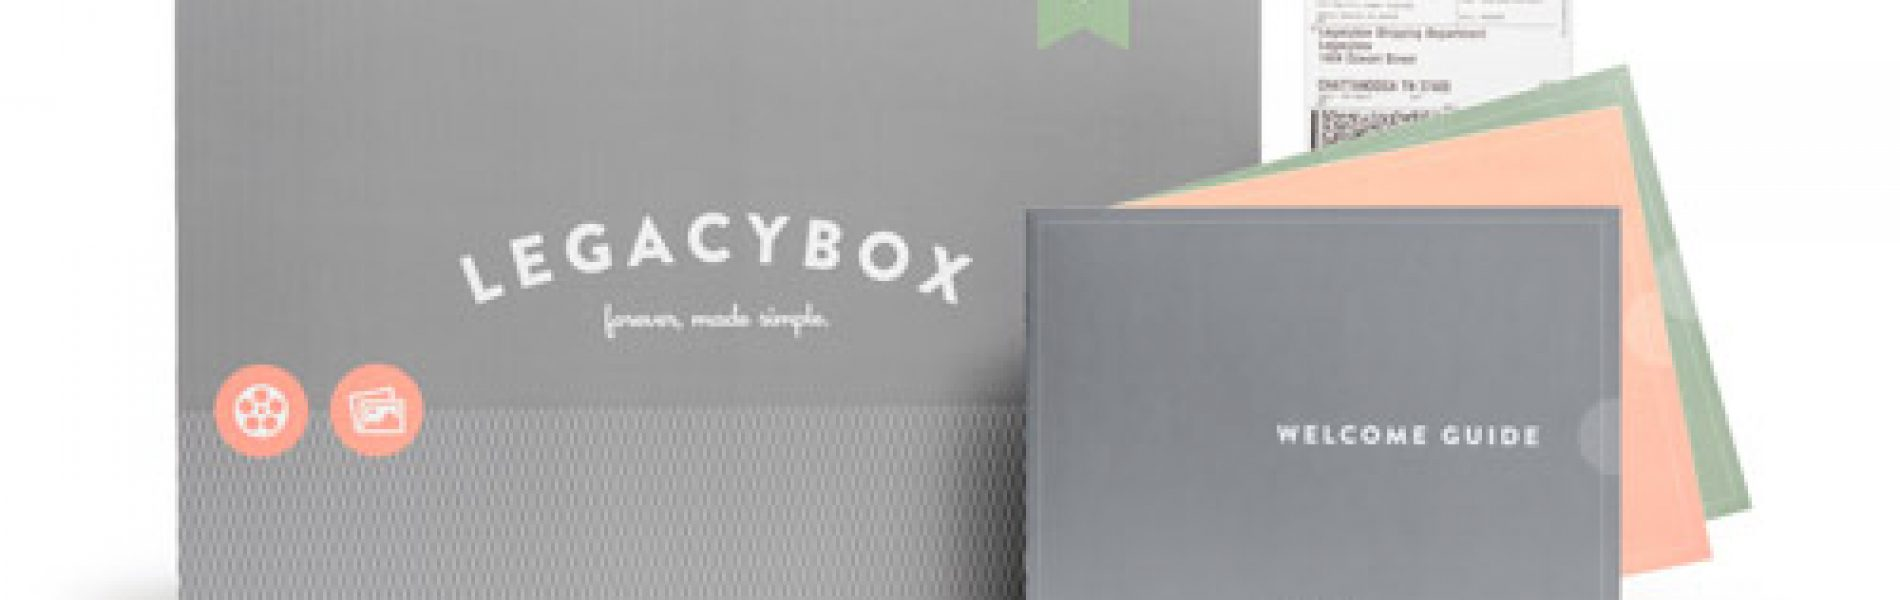 LEGACYBOX: Do Startups hurt themselves with too many coupons?